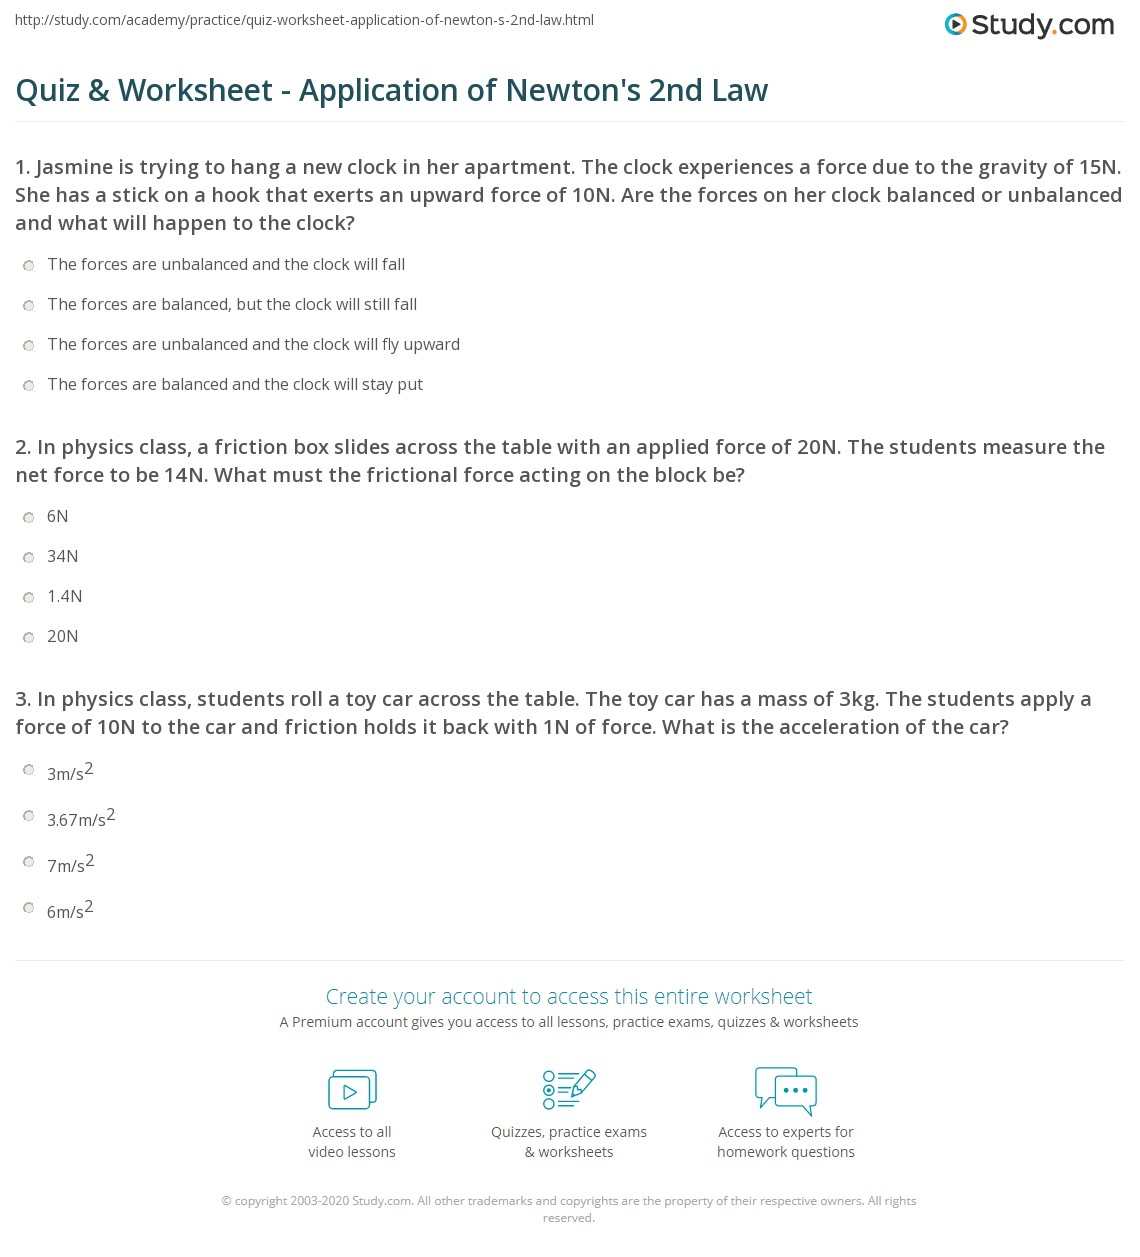 Quiz & Worksheet - Application of Newton's 2nd Law | Study.com